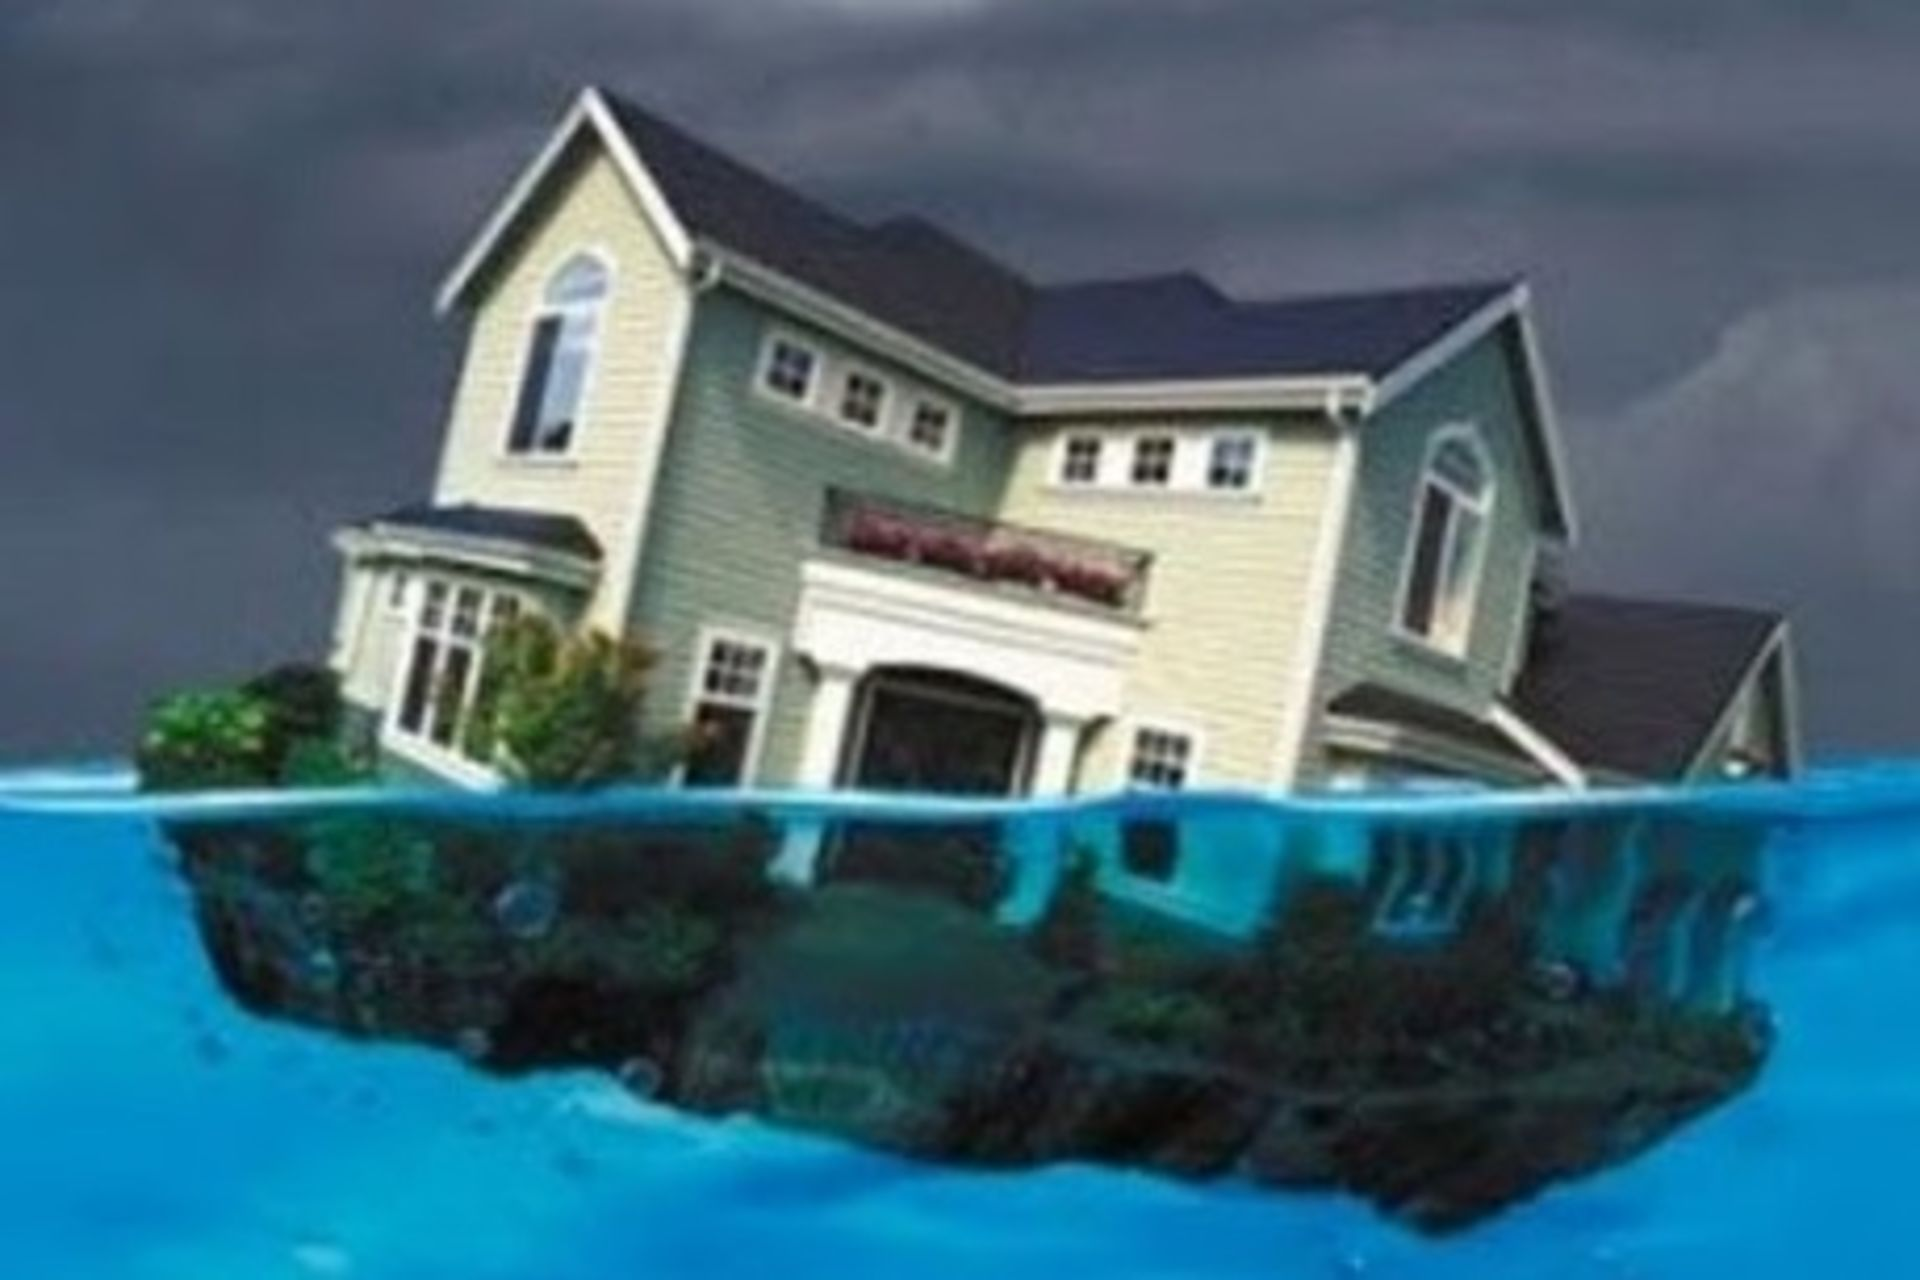 Know Your Flood Risk Before You're in Too Deep